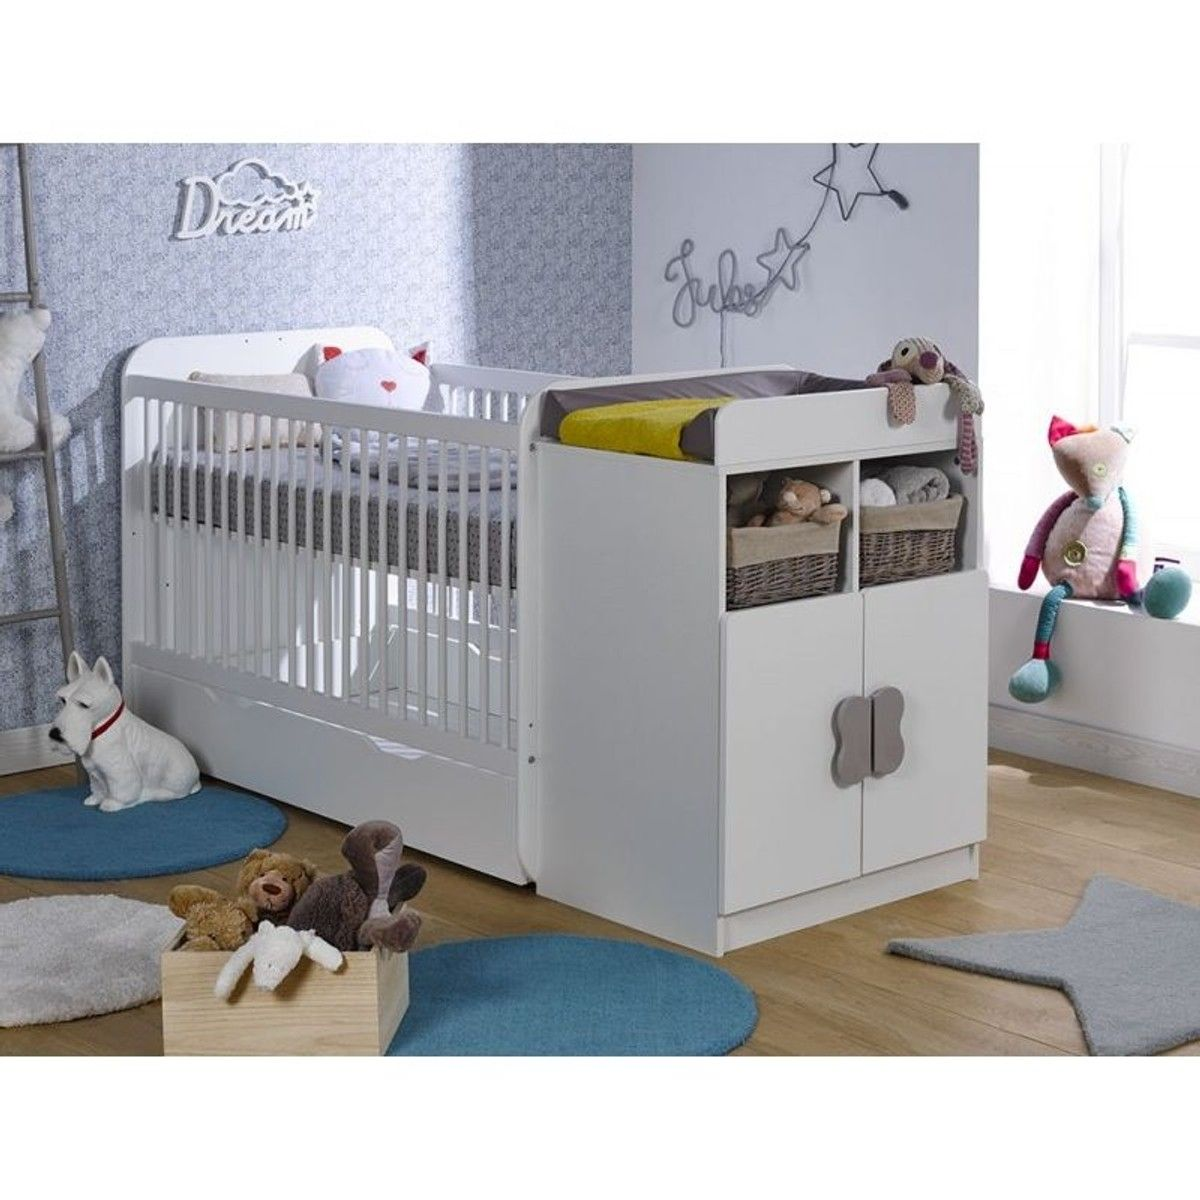 Lit Bebe Evolutif Mathis Fabrication Francaise Lit Bebe Lit Evolutif Et Amenagement Chambre Bebe